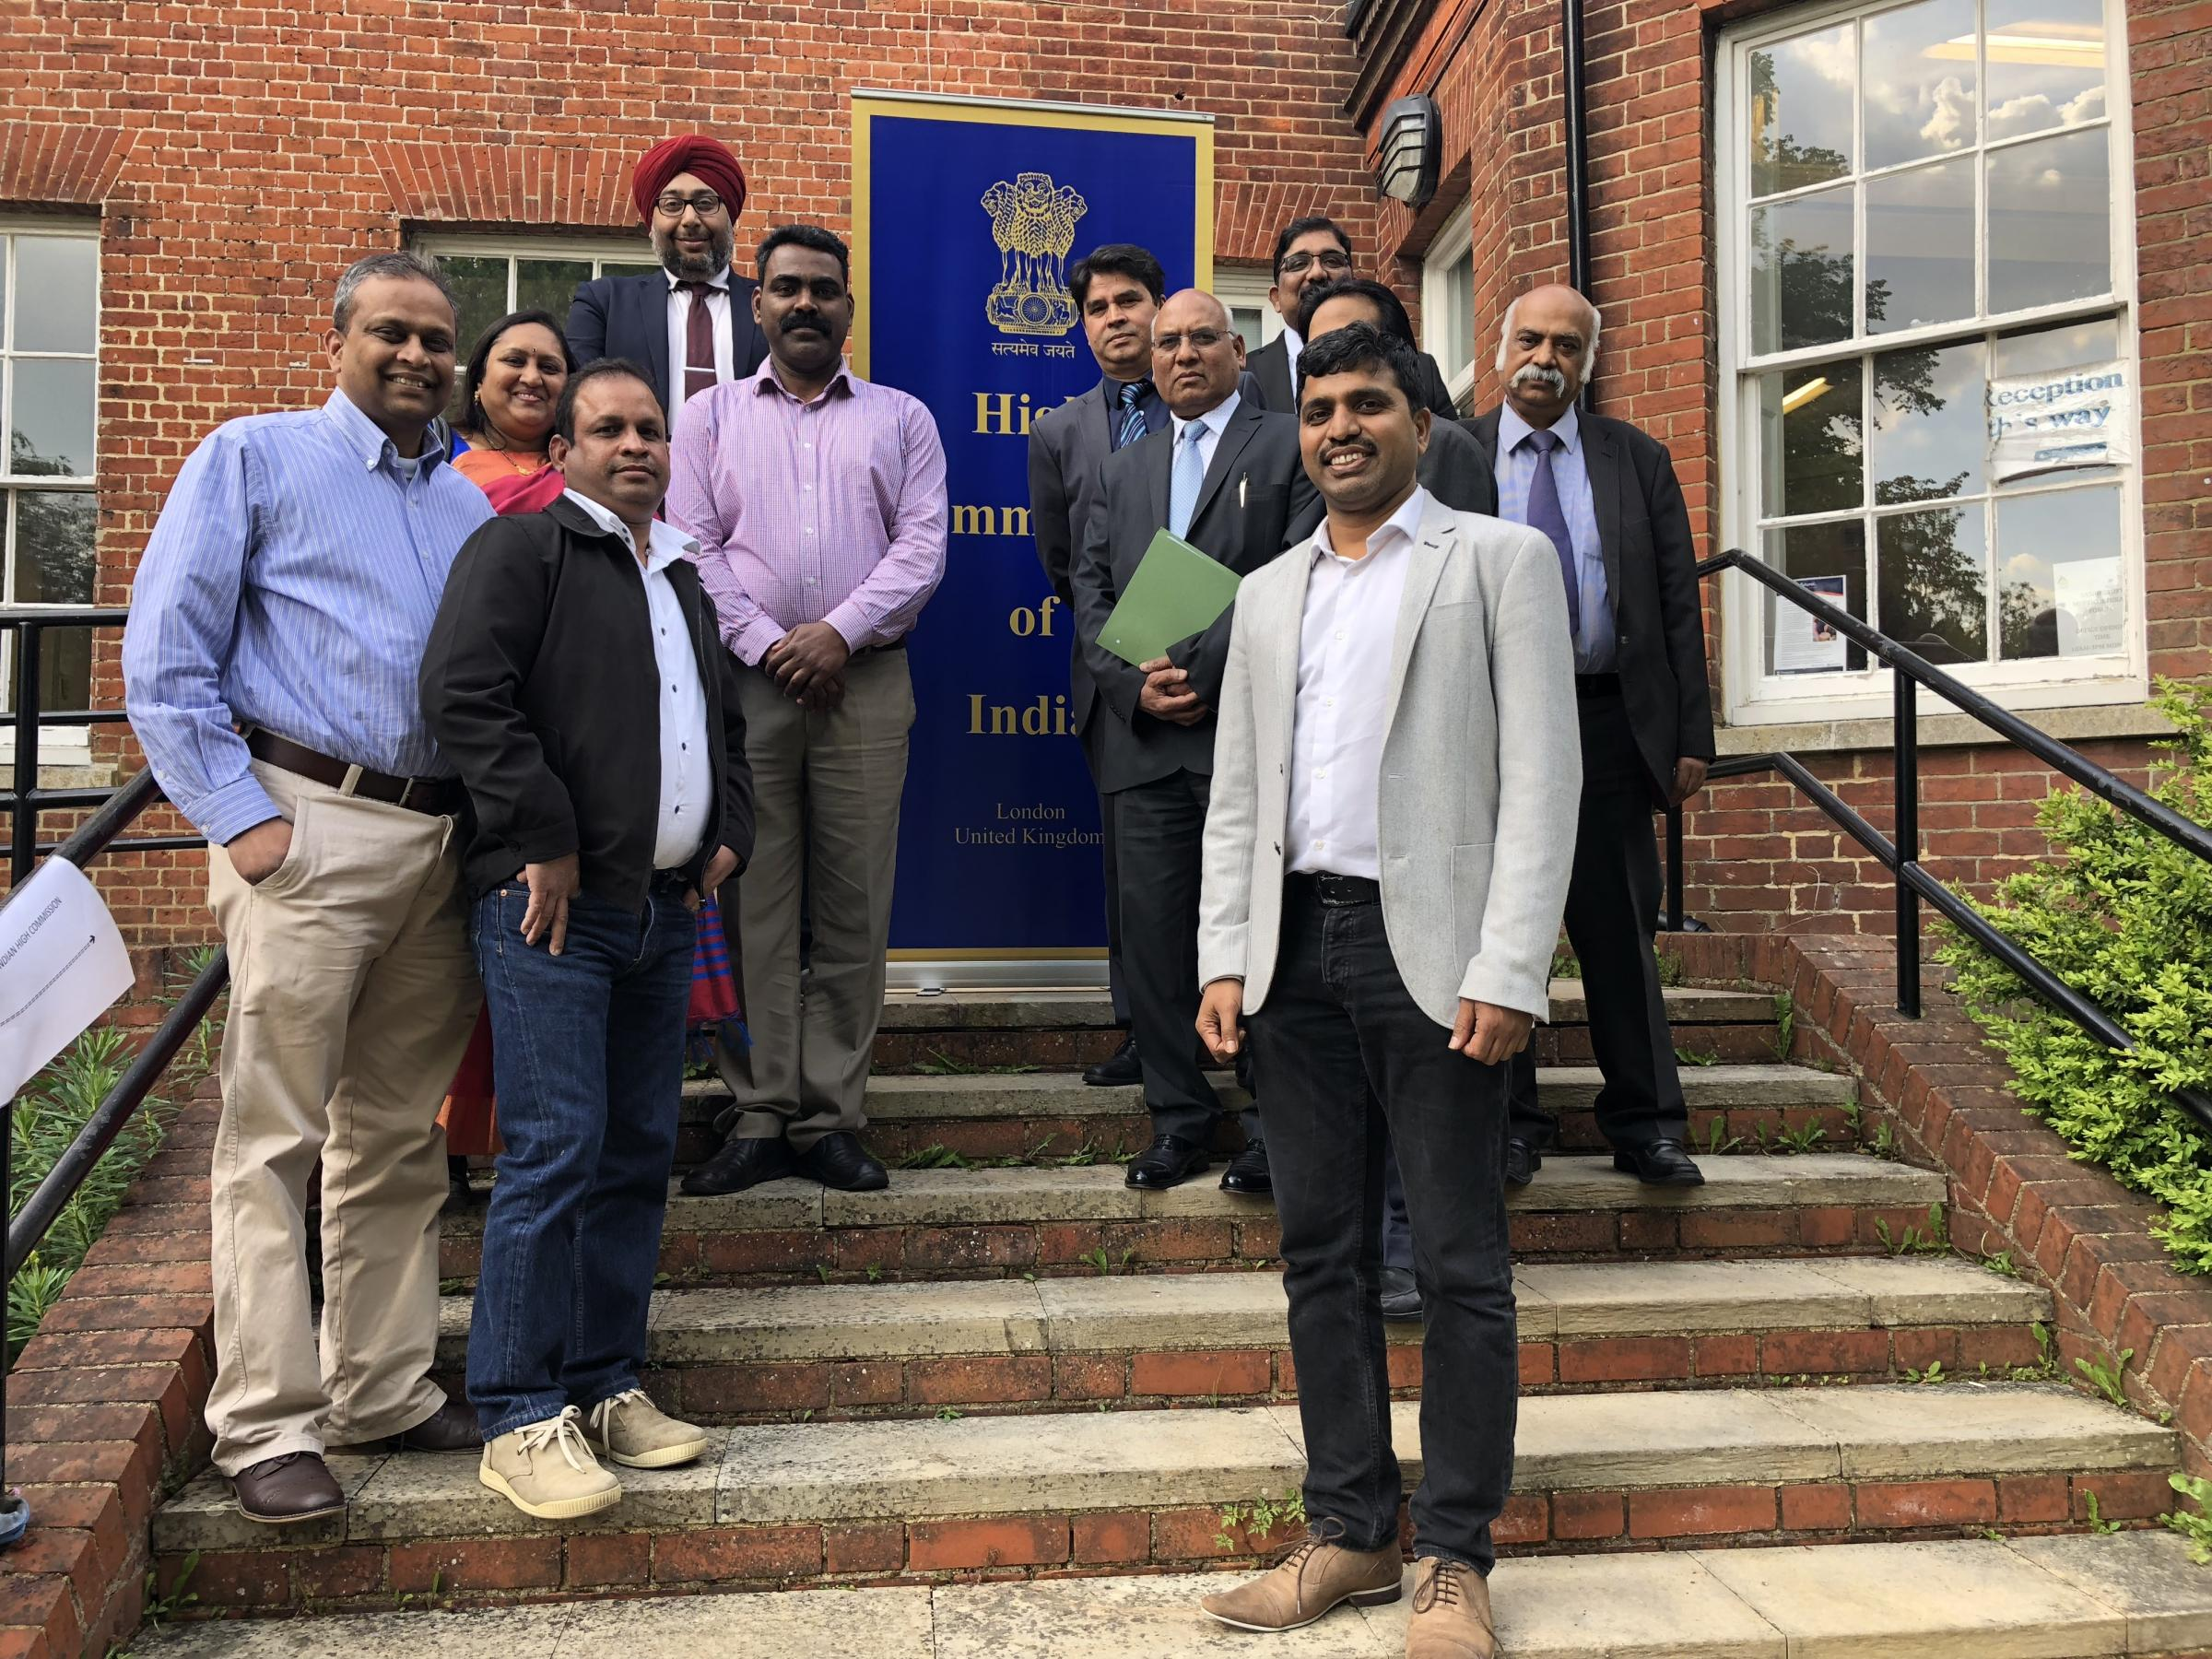 BMF members with the High Commission of India representatives